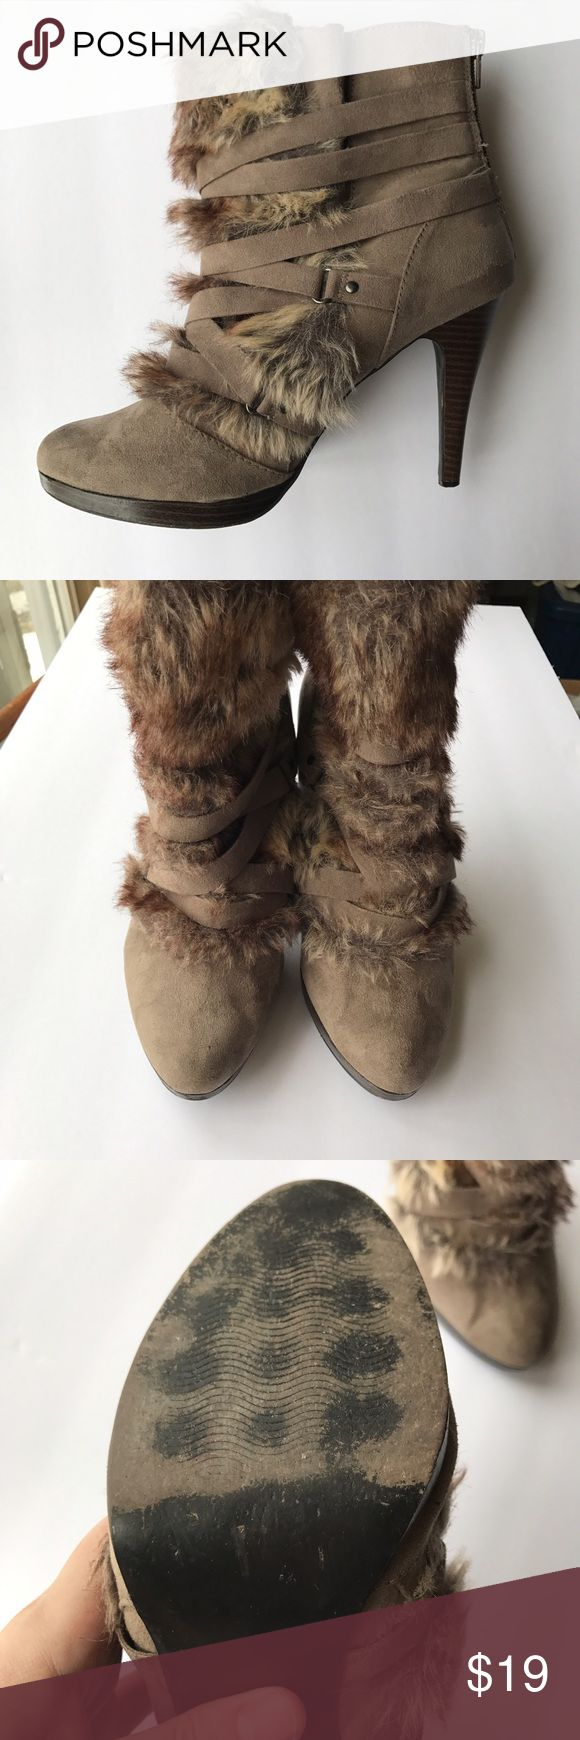 • ELLE • brown booties Gorgeous taupe colored booties with faux fur on the front. So comfortable and stylish! Sturdy heel on these elegant boots. They zip up in back. Some wear on the sole, as shown. Pretty shoes! Elle Shoes Ankle Boots & Booties